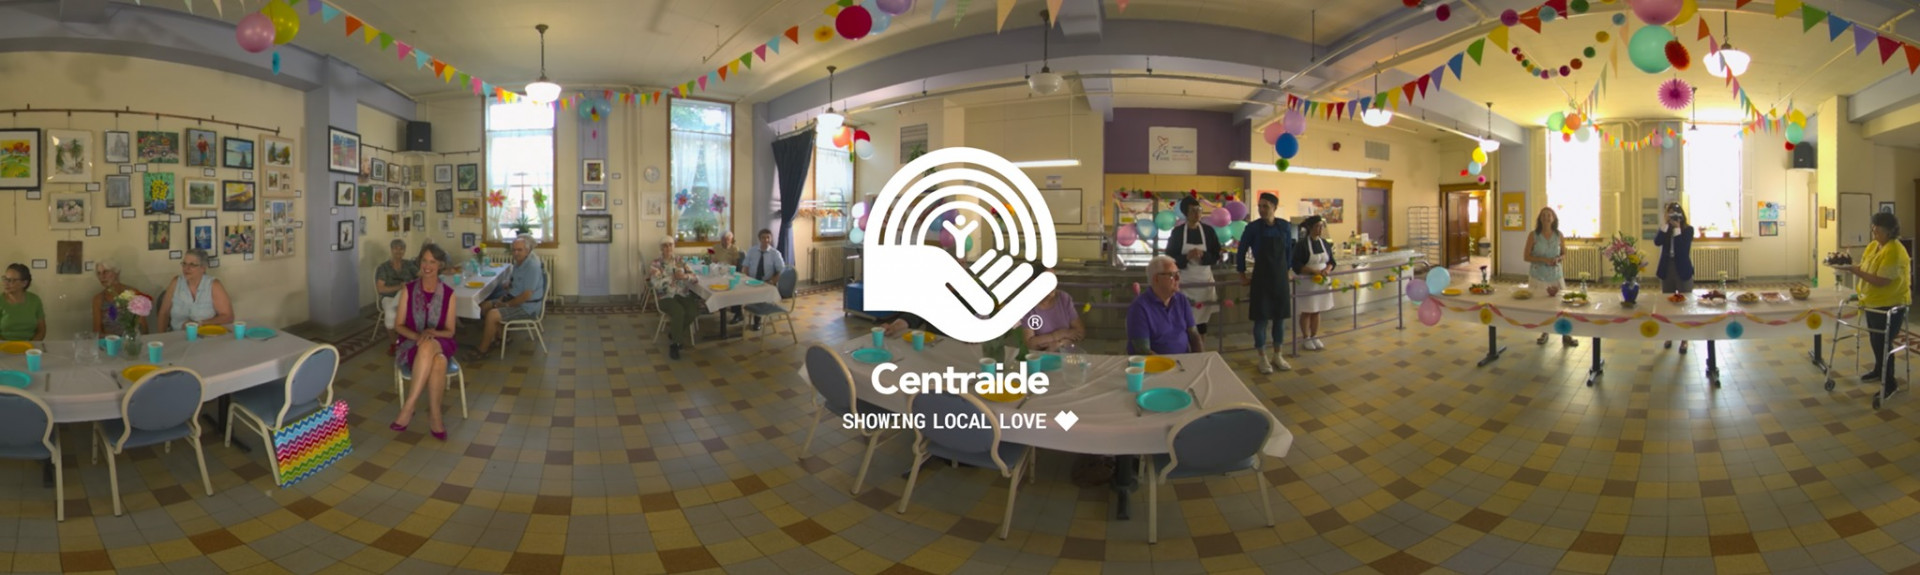 Centraide – Showing local love